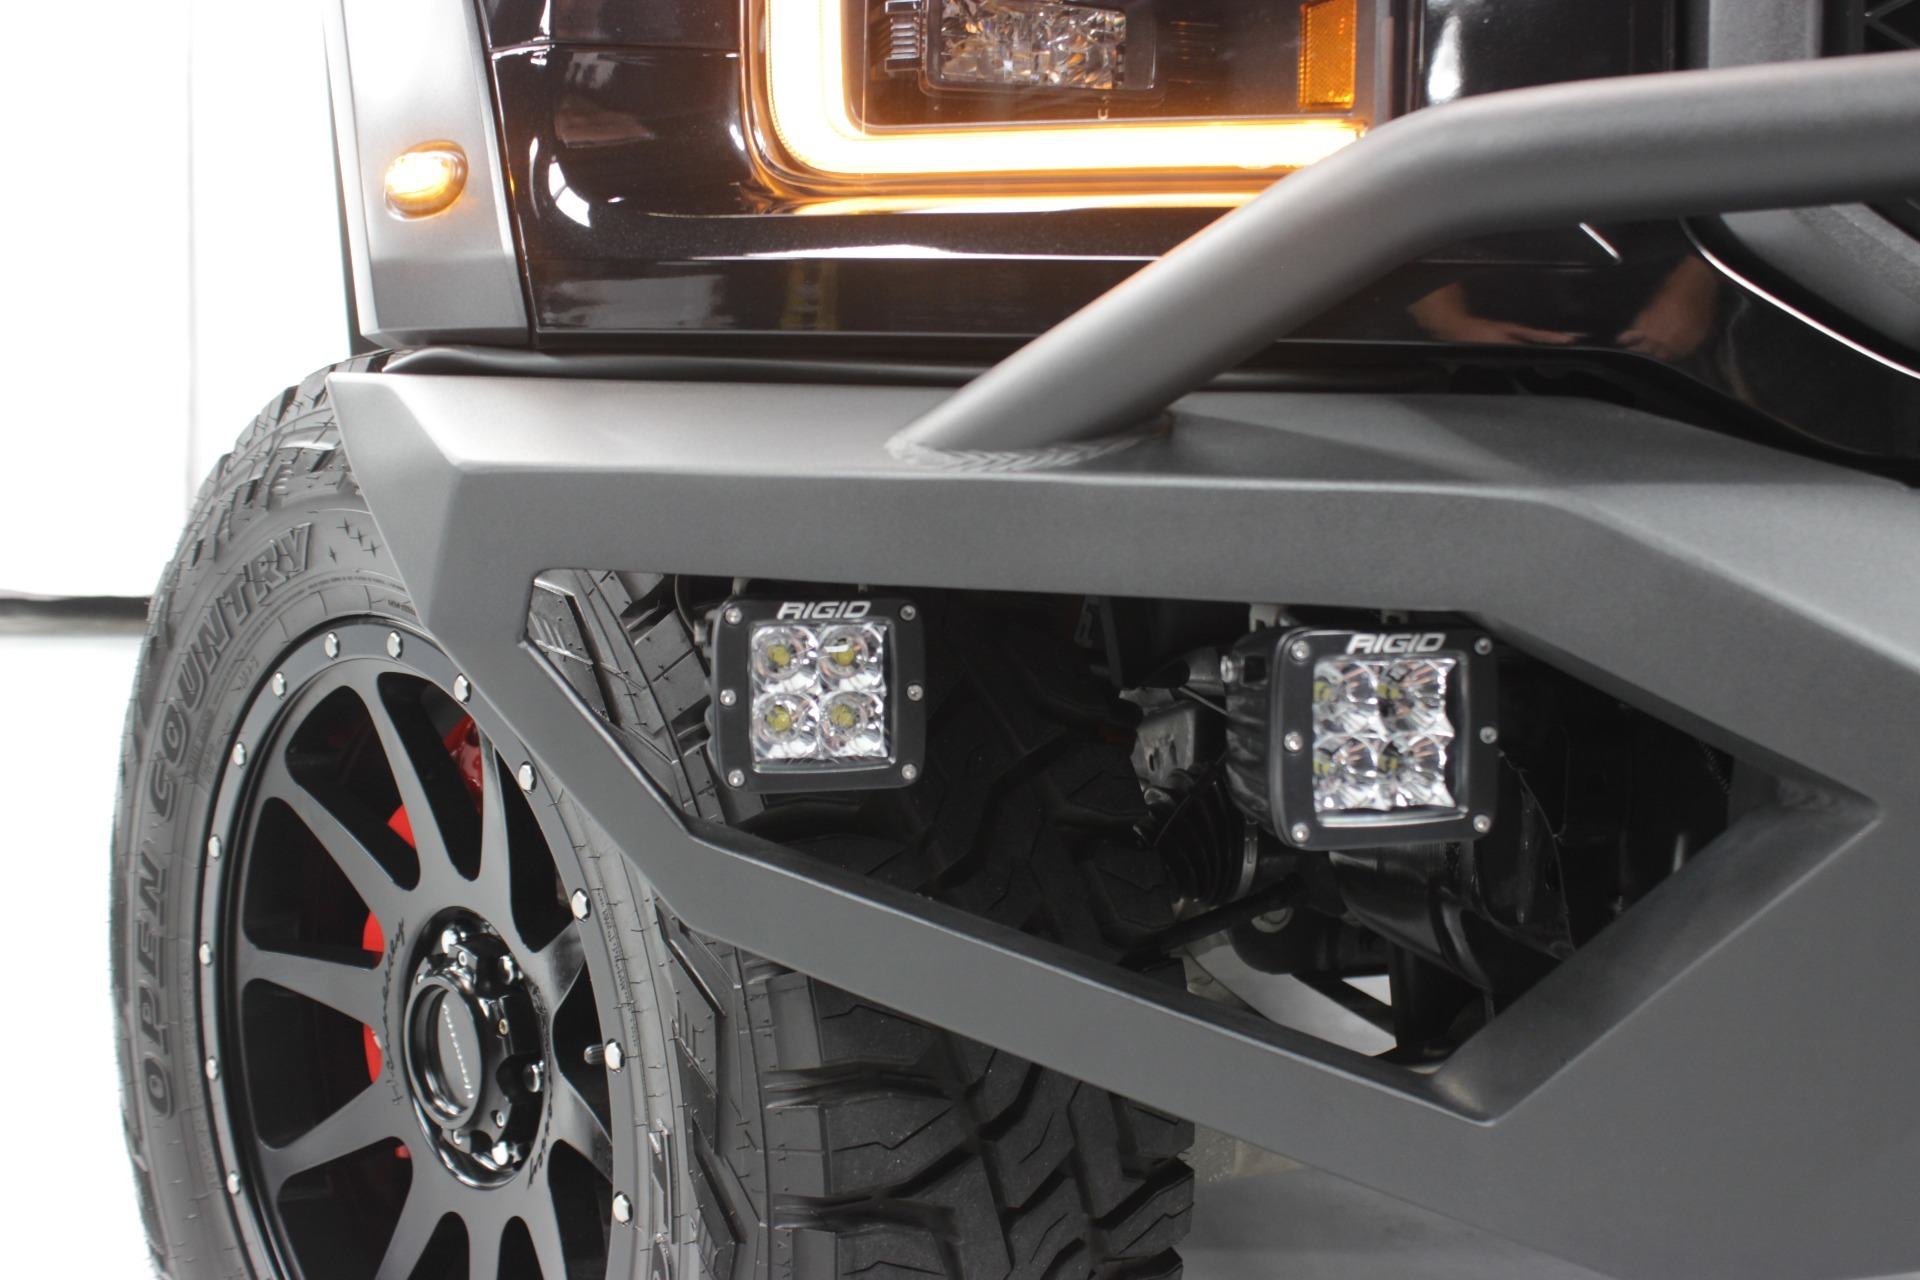 Used 2019 Ford F-150 RAPTOR 4x4 HENNESSY VELOCIRAPTOR VR600 UPGRADE (600HP) for sale $109,995 at Formula Imports in Charlotte NC 28227 43